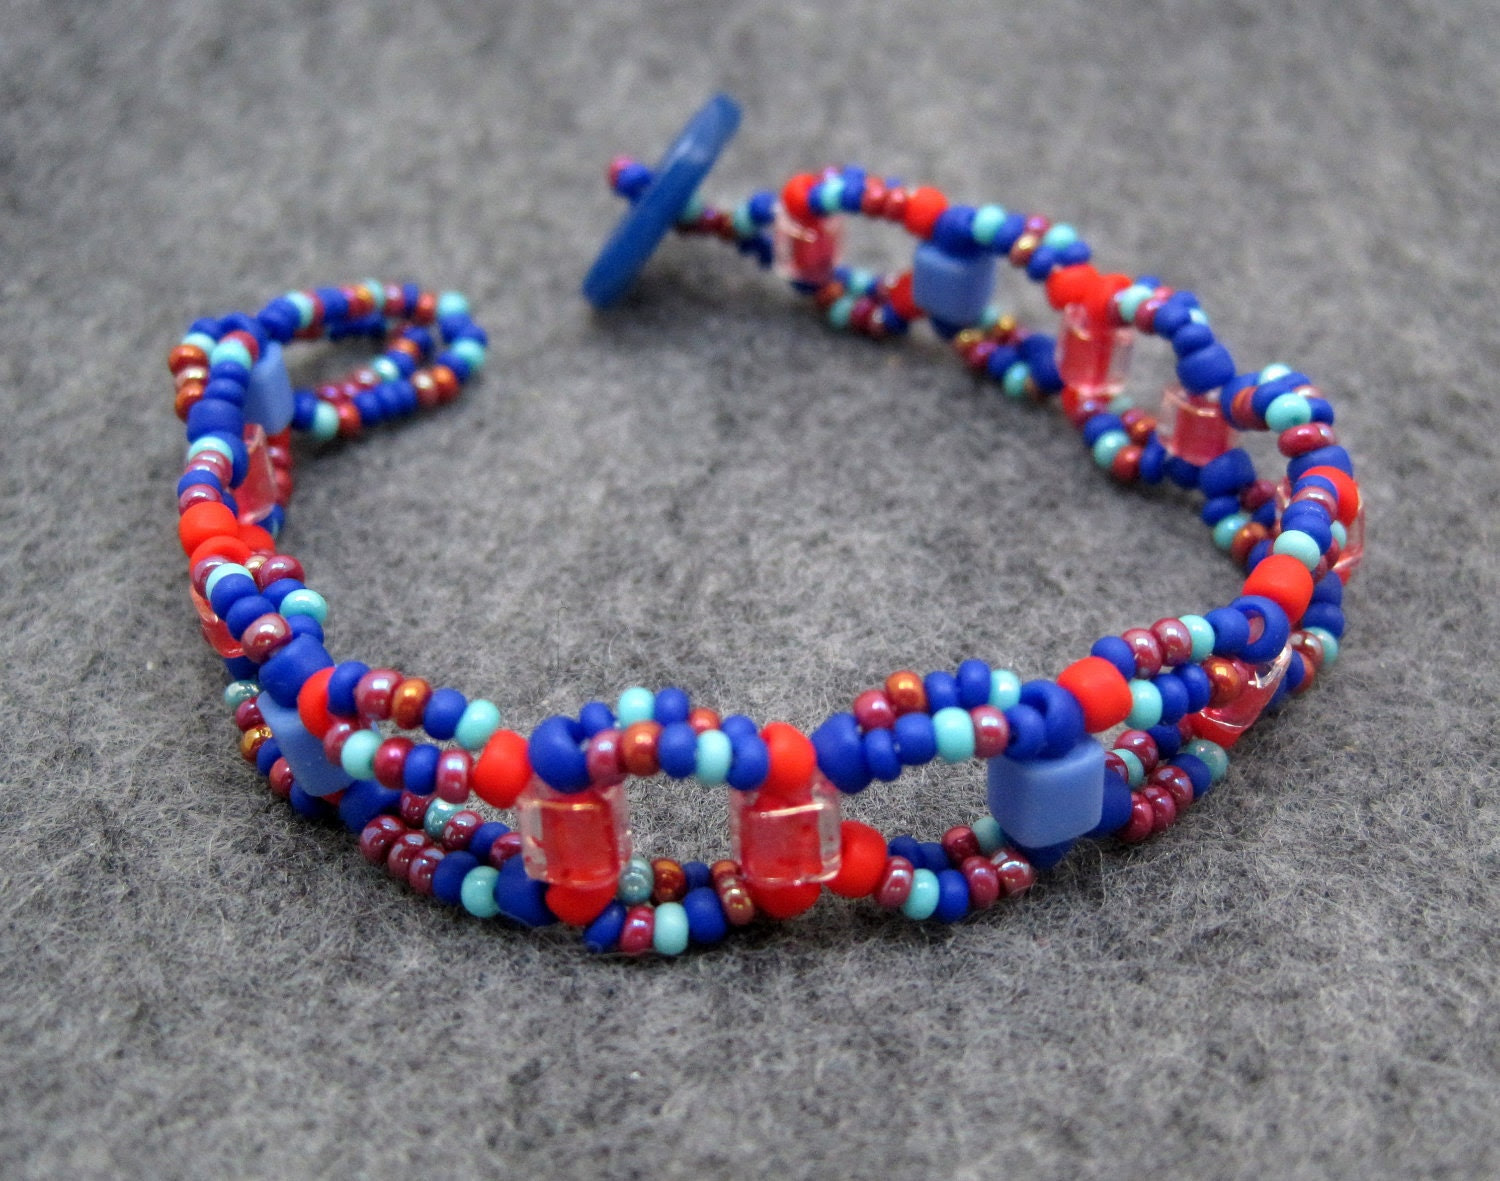 Beaded Bracelet - Red and Blue by randomcreative on Etsy - randomcreative